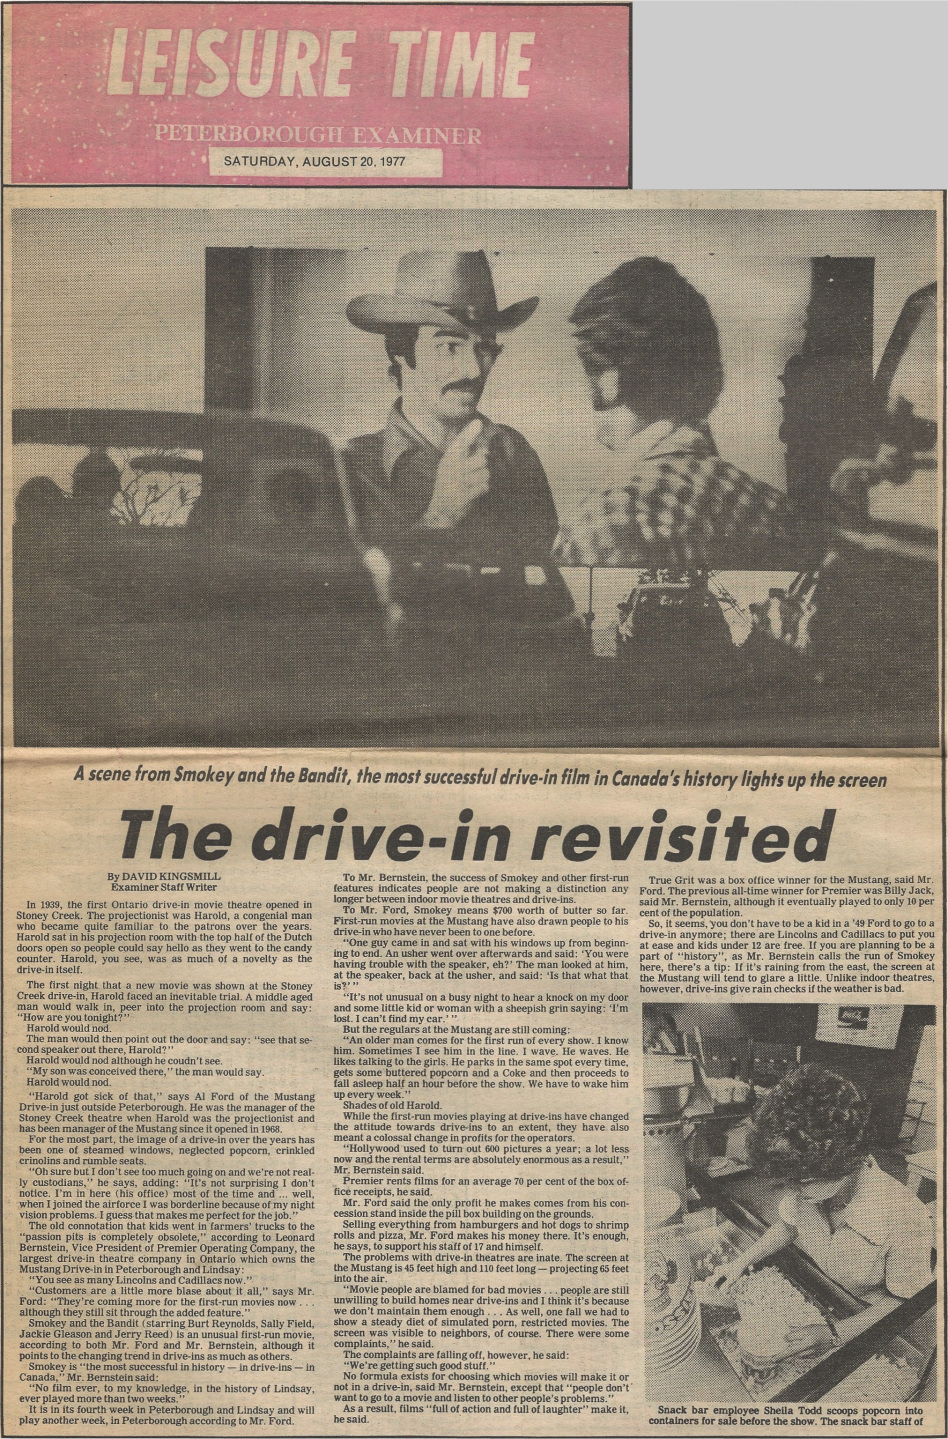 Peterborough Examiner article from August 20th, 1977